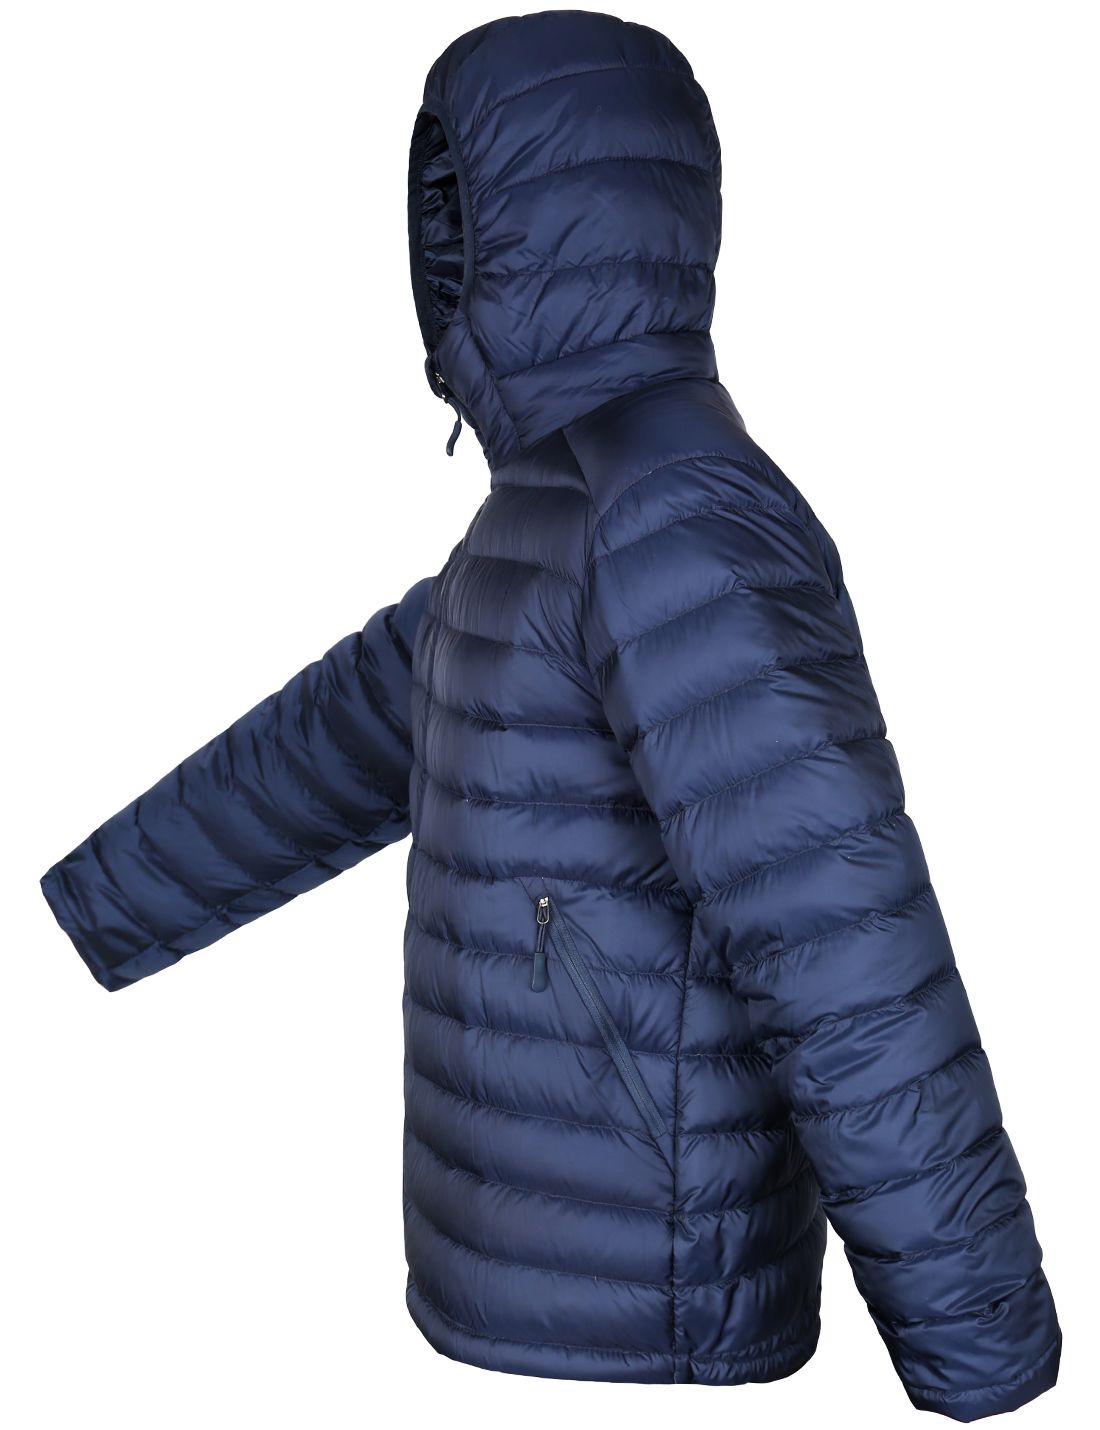 Lesmart Men S Hooded Puffer Down Coat With Images Down Jacket Jackets Windproof Jacket